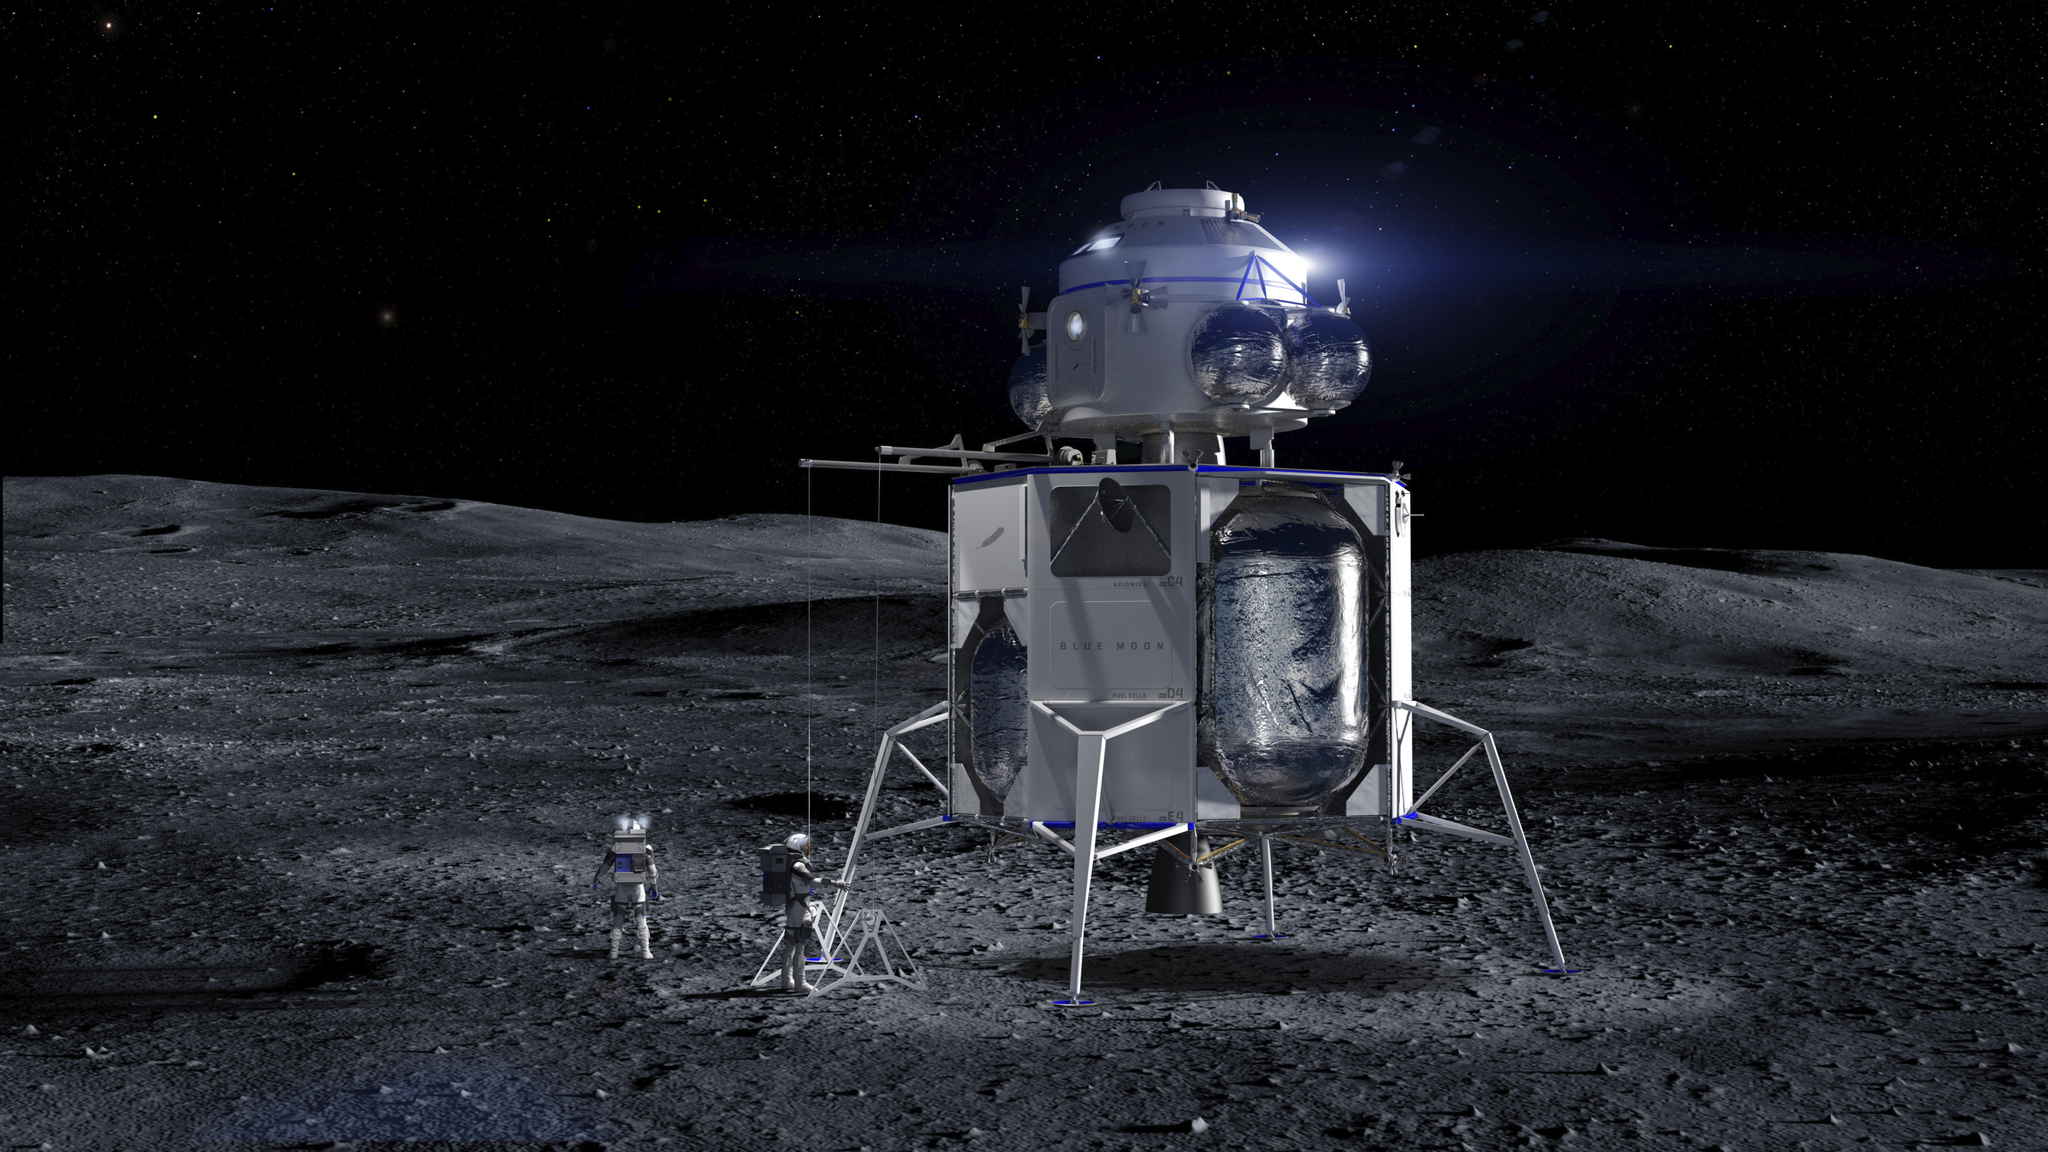 A Blue Moon lander with an ascent vehicle (built by another company) on top.